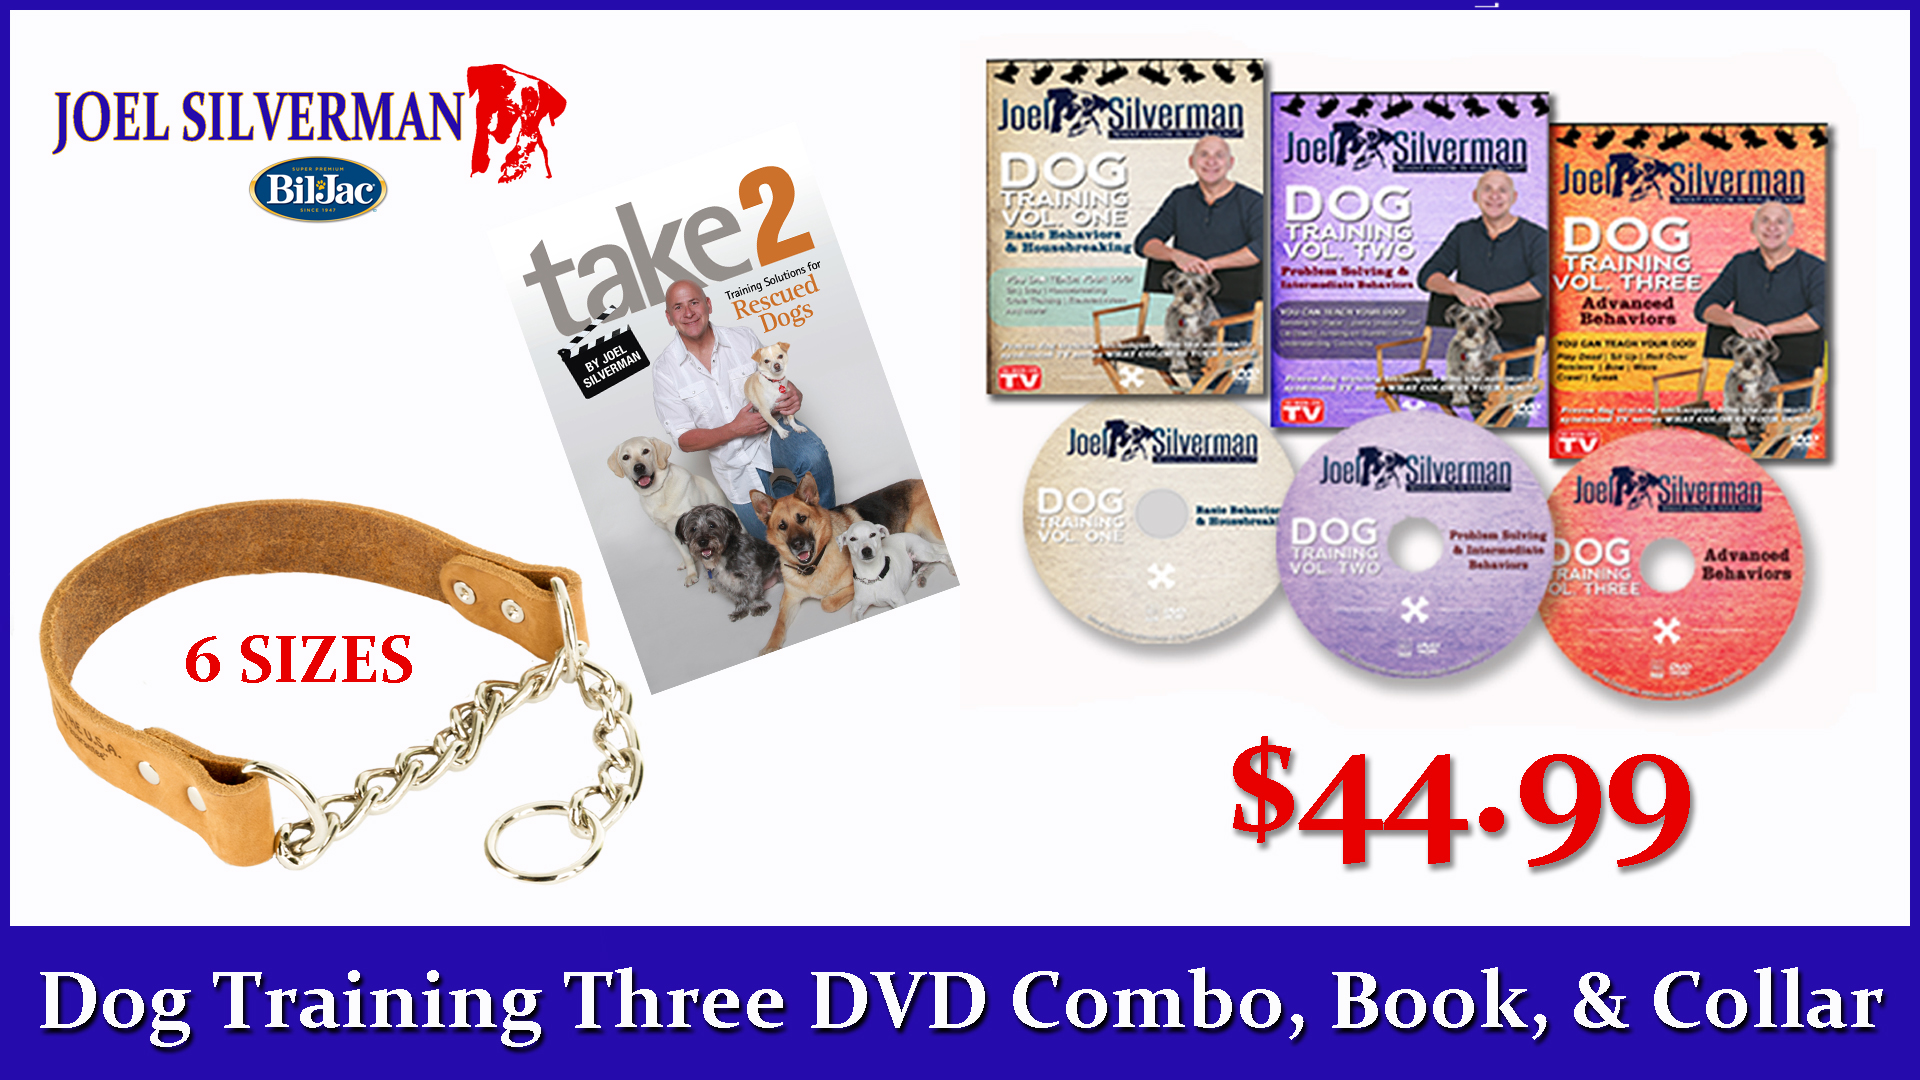 Joel Silvermans Dog Training Dvd